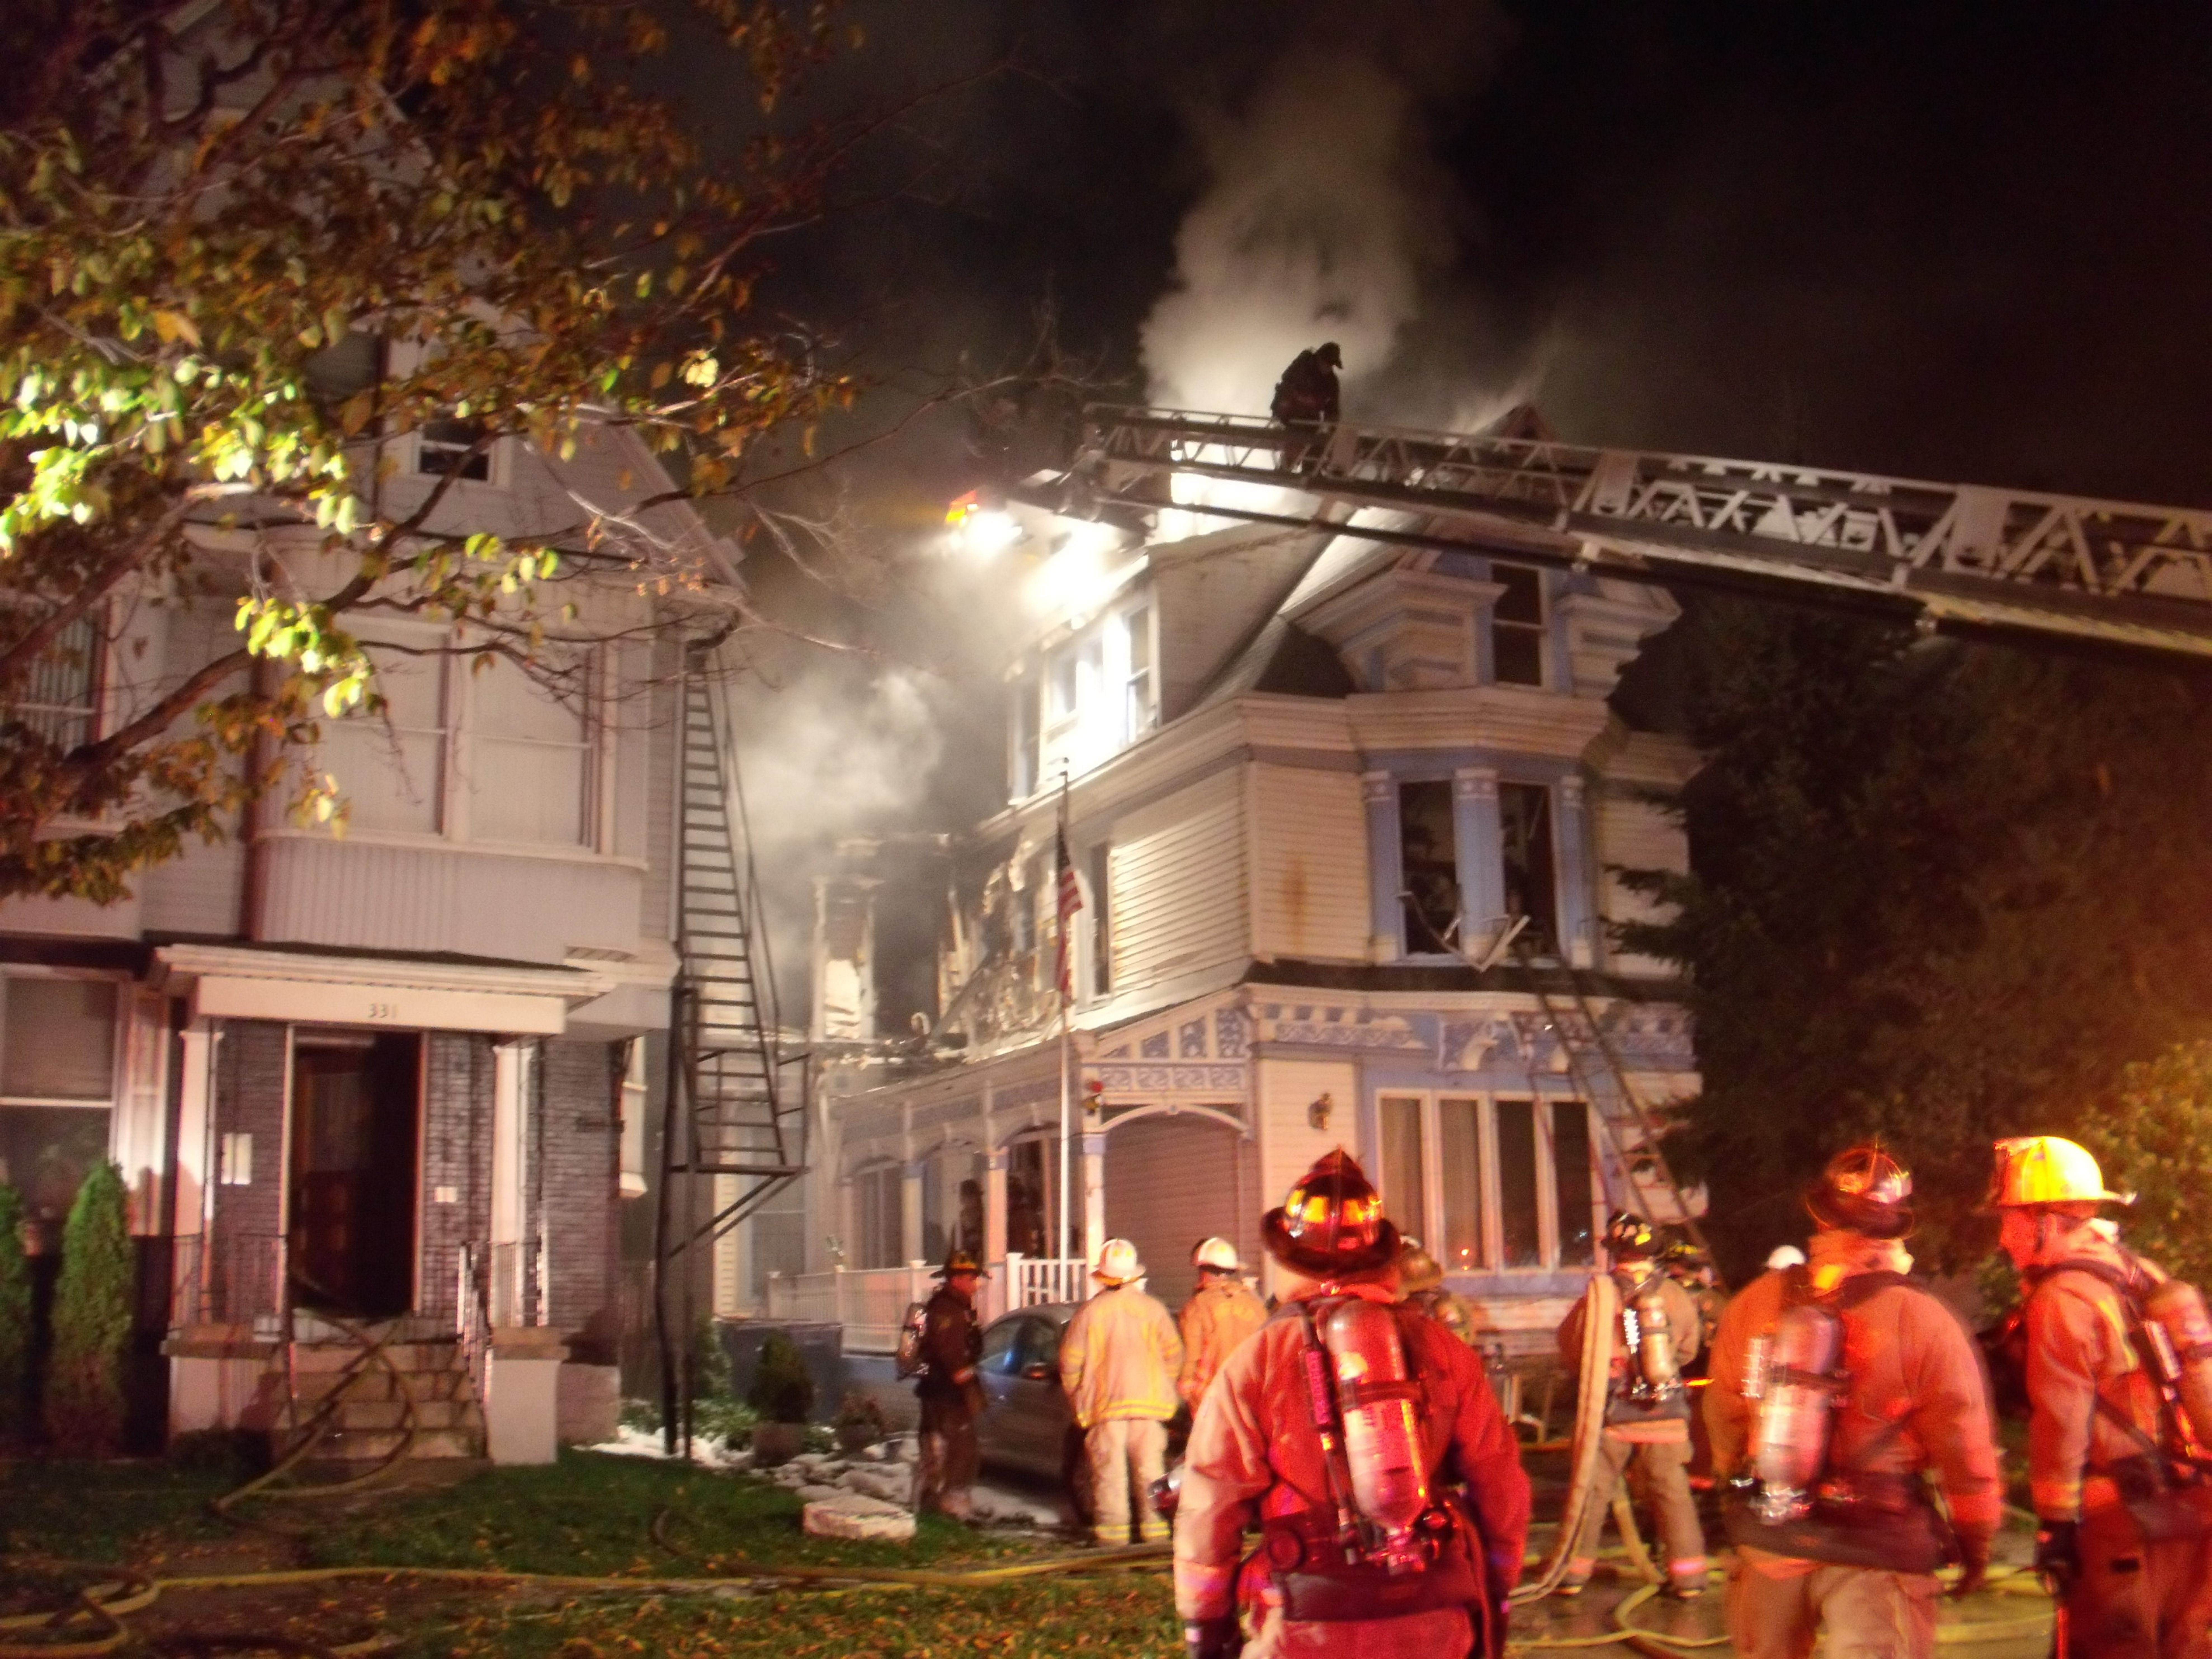 A early-morning fire Thursday damaged this Jersey Street boardinghouse, causing an estimated $300,000 in damages to the structure. Twelve residents were left homeless by the blaze.